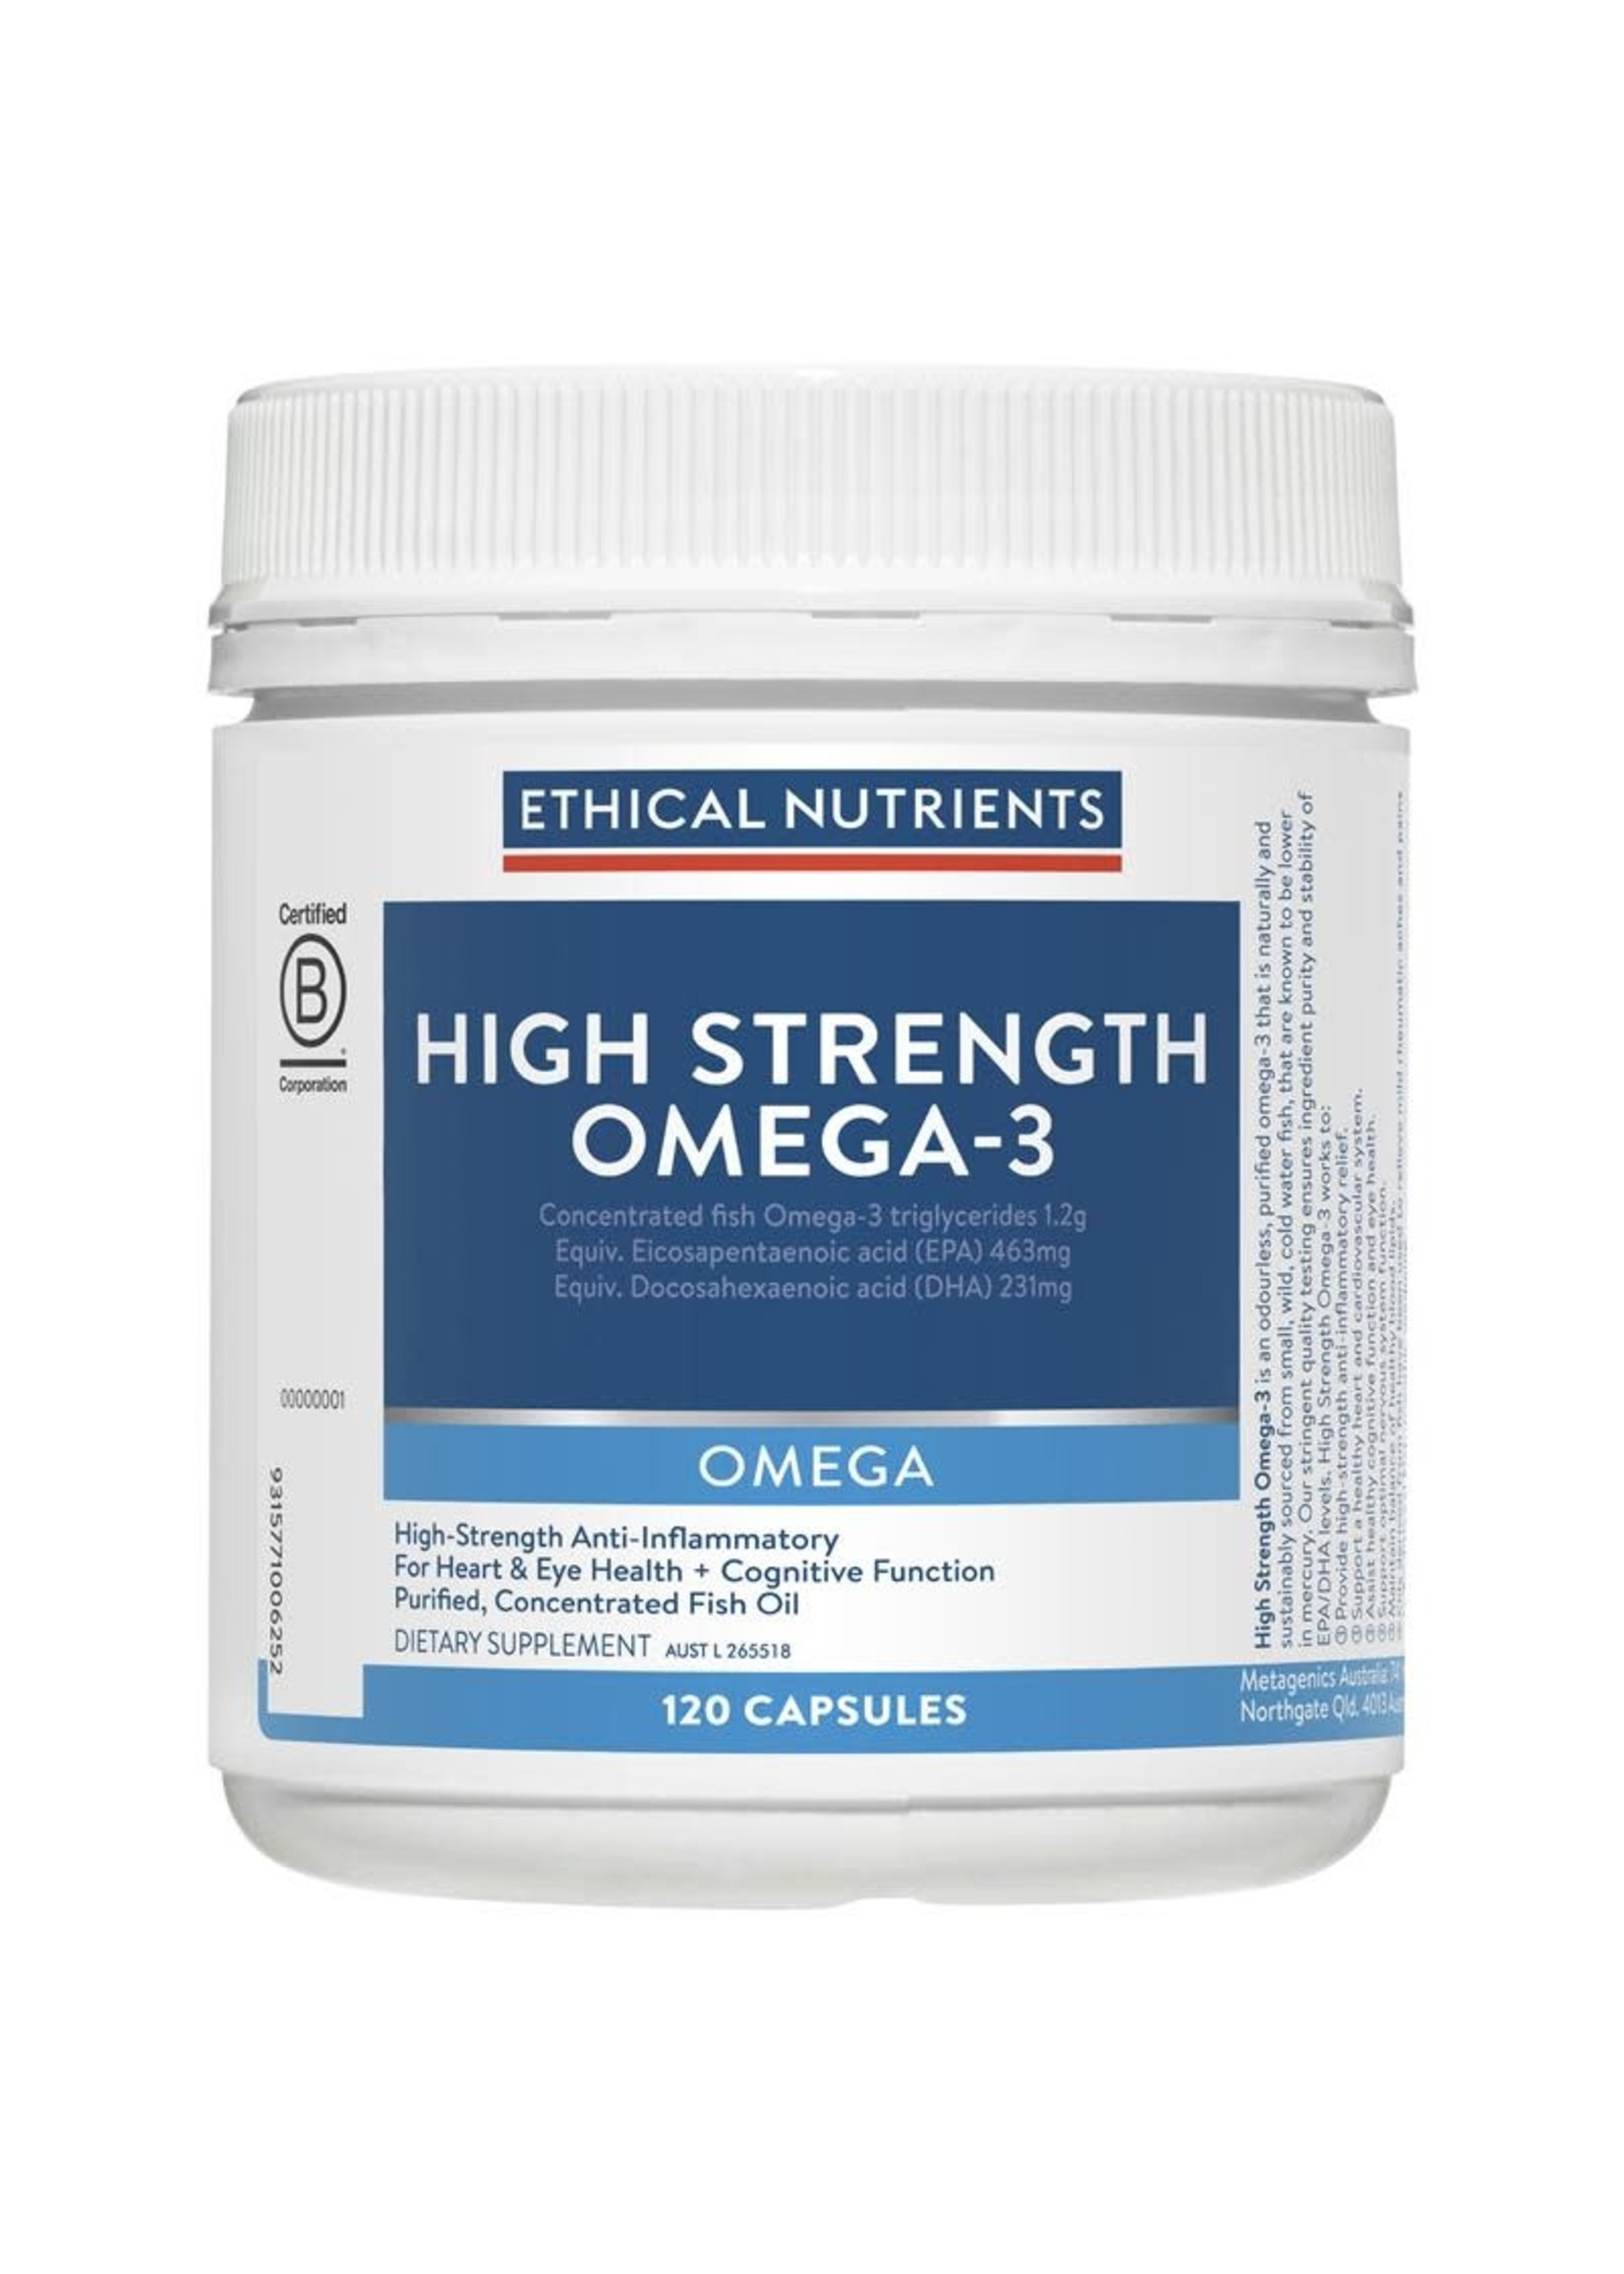 ETHICAL NUTRIENTS Ethical Nutrients omegazorb Hi-Strength Fish Oil 120 Capsules